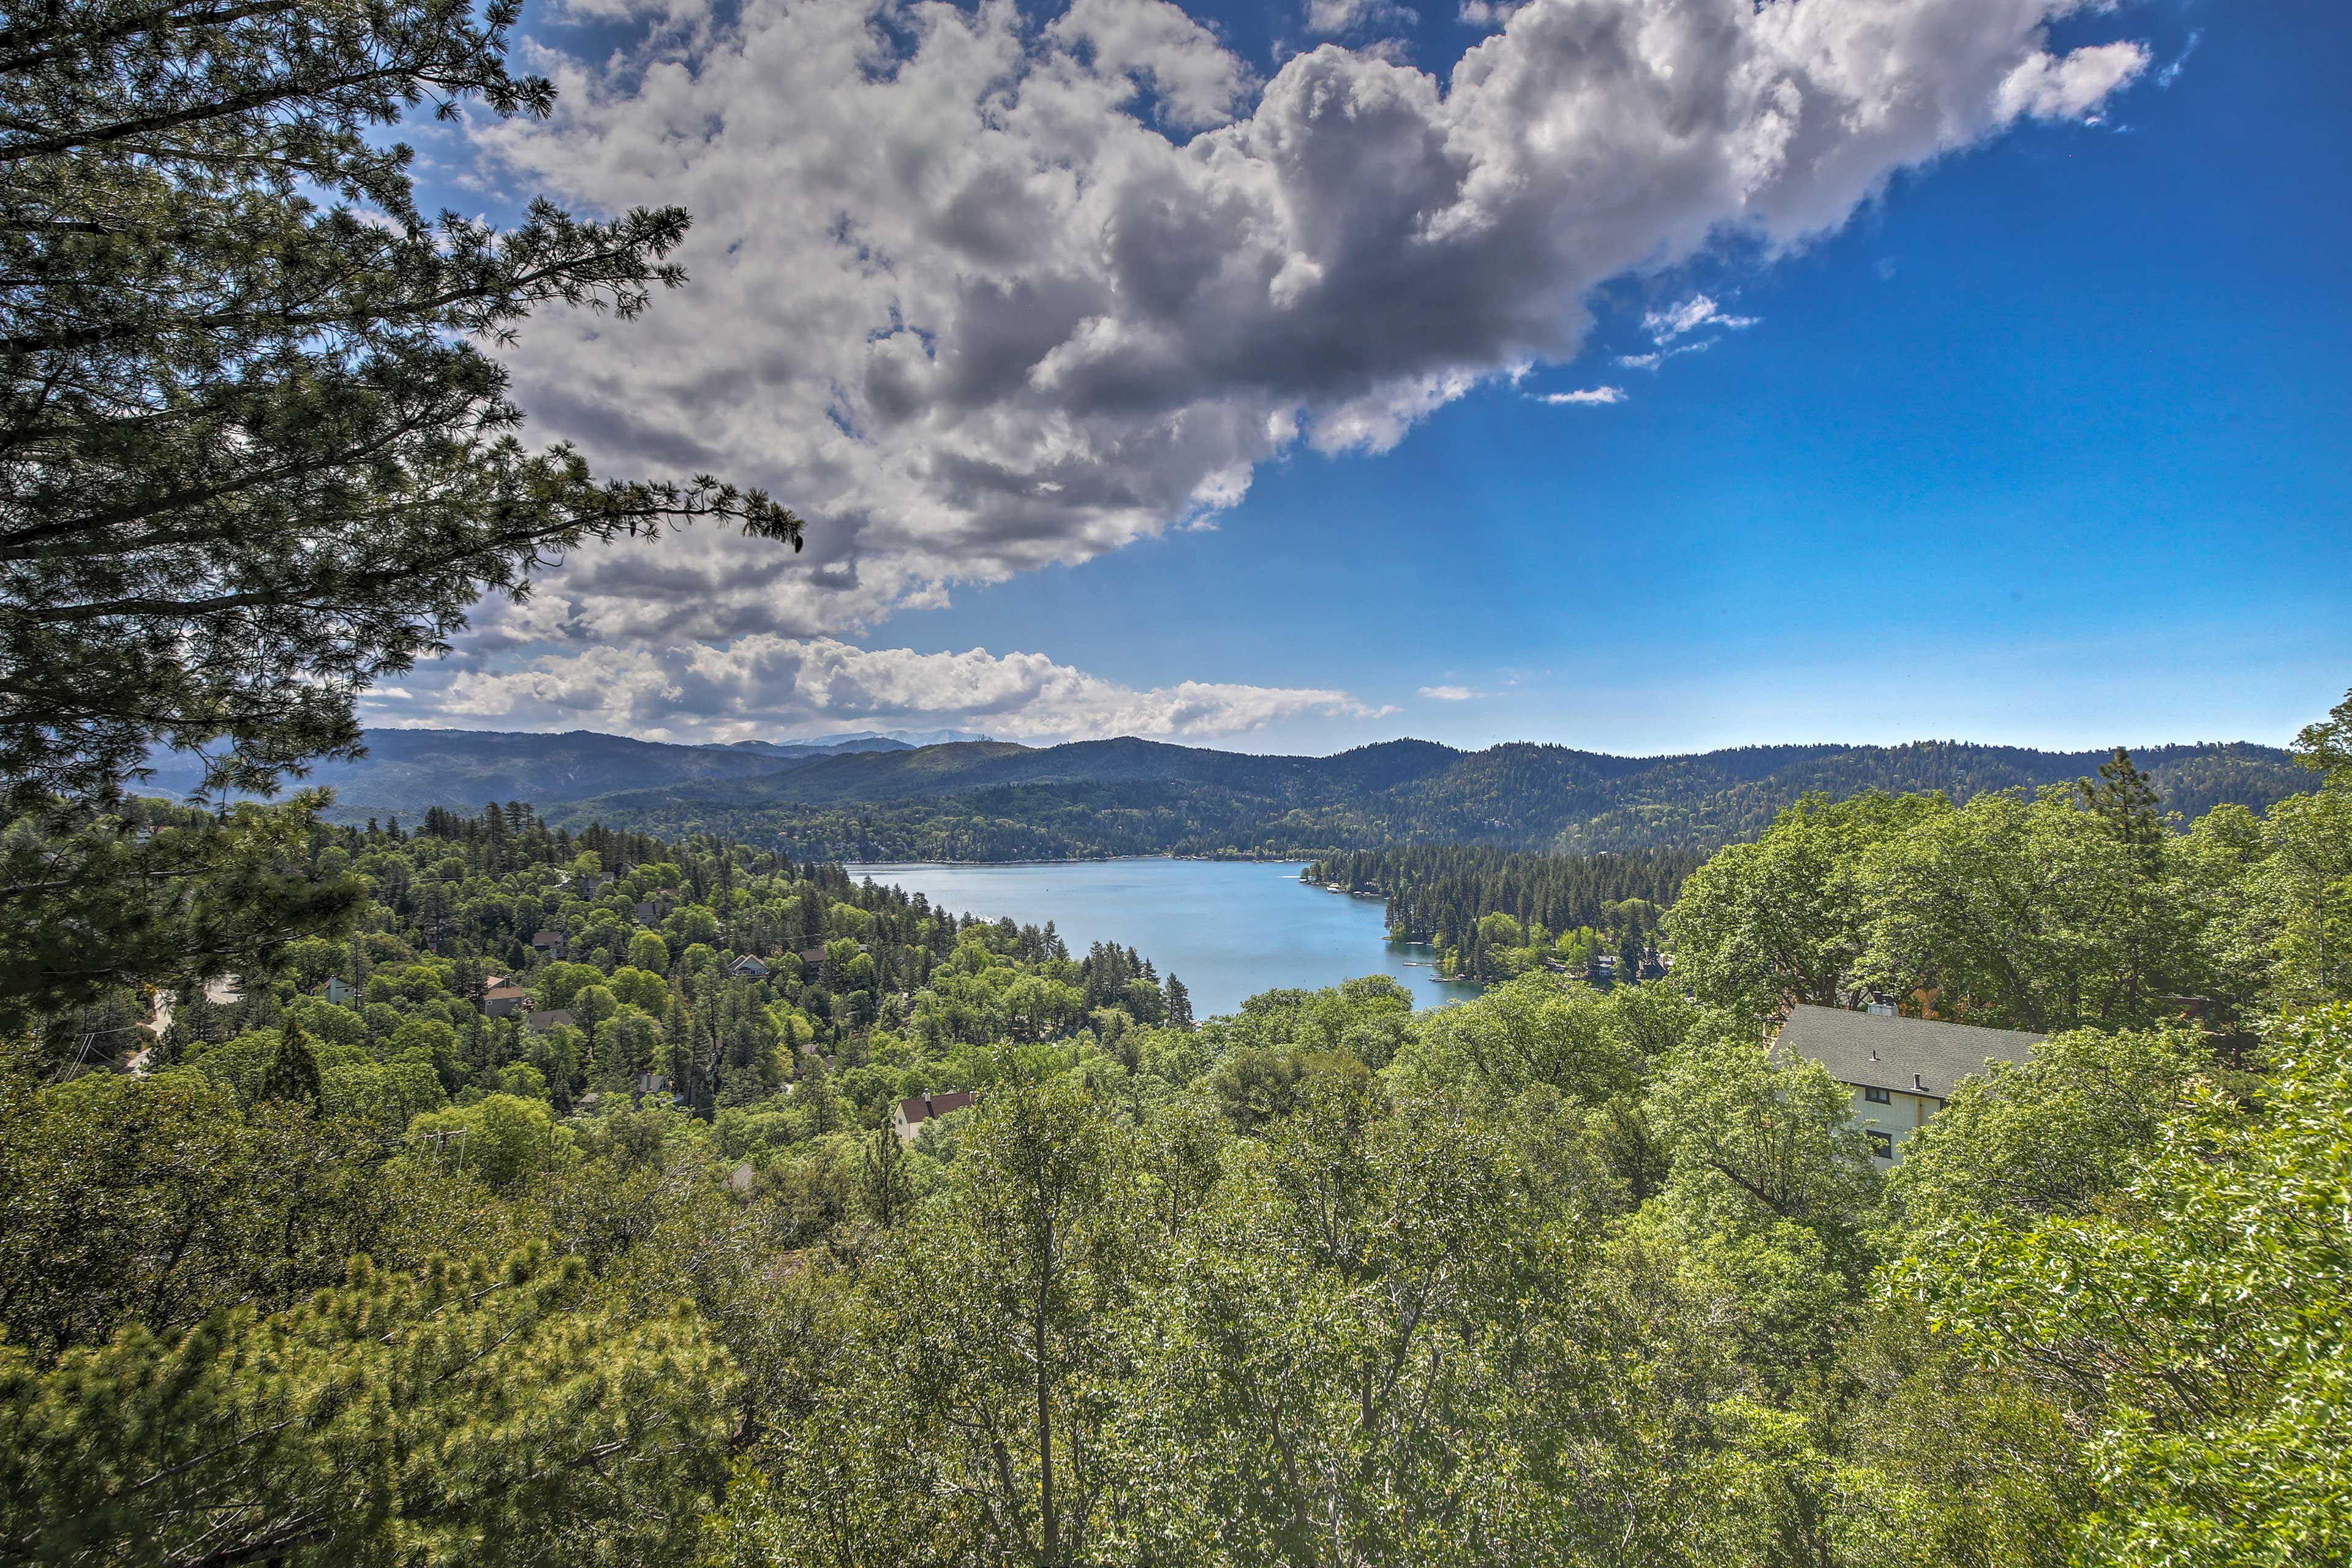 Try to find highlights of the lake from your very own deck.